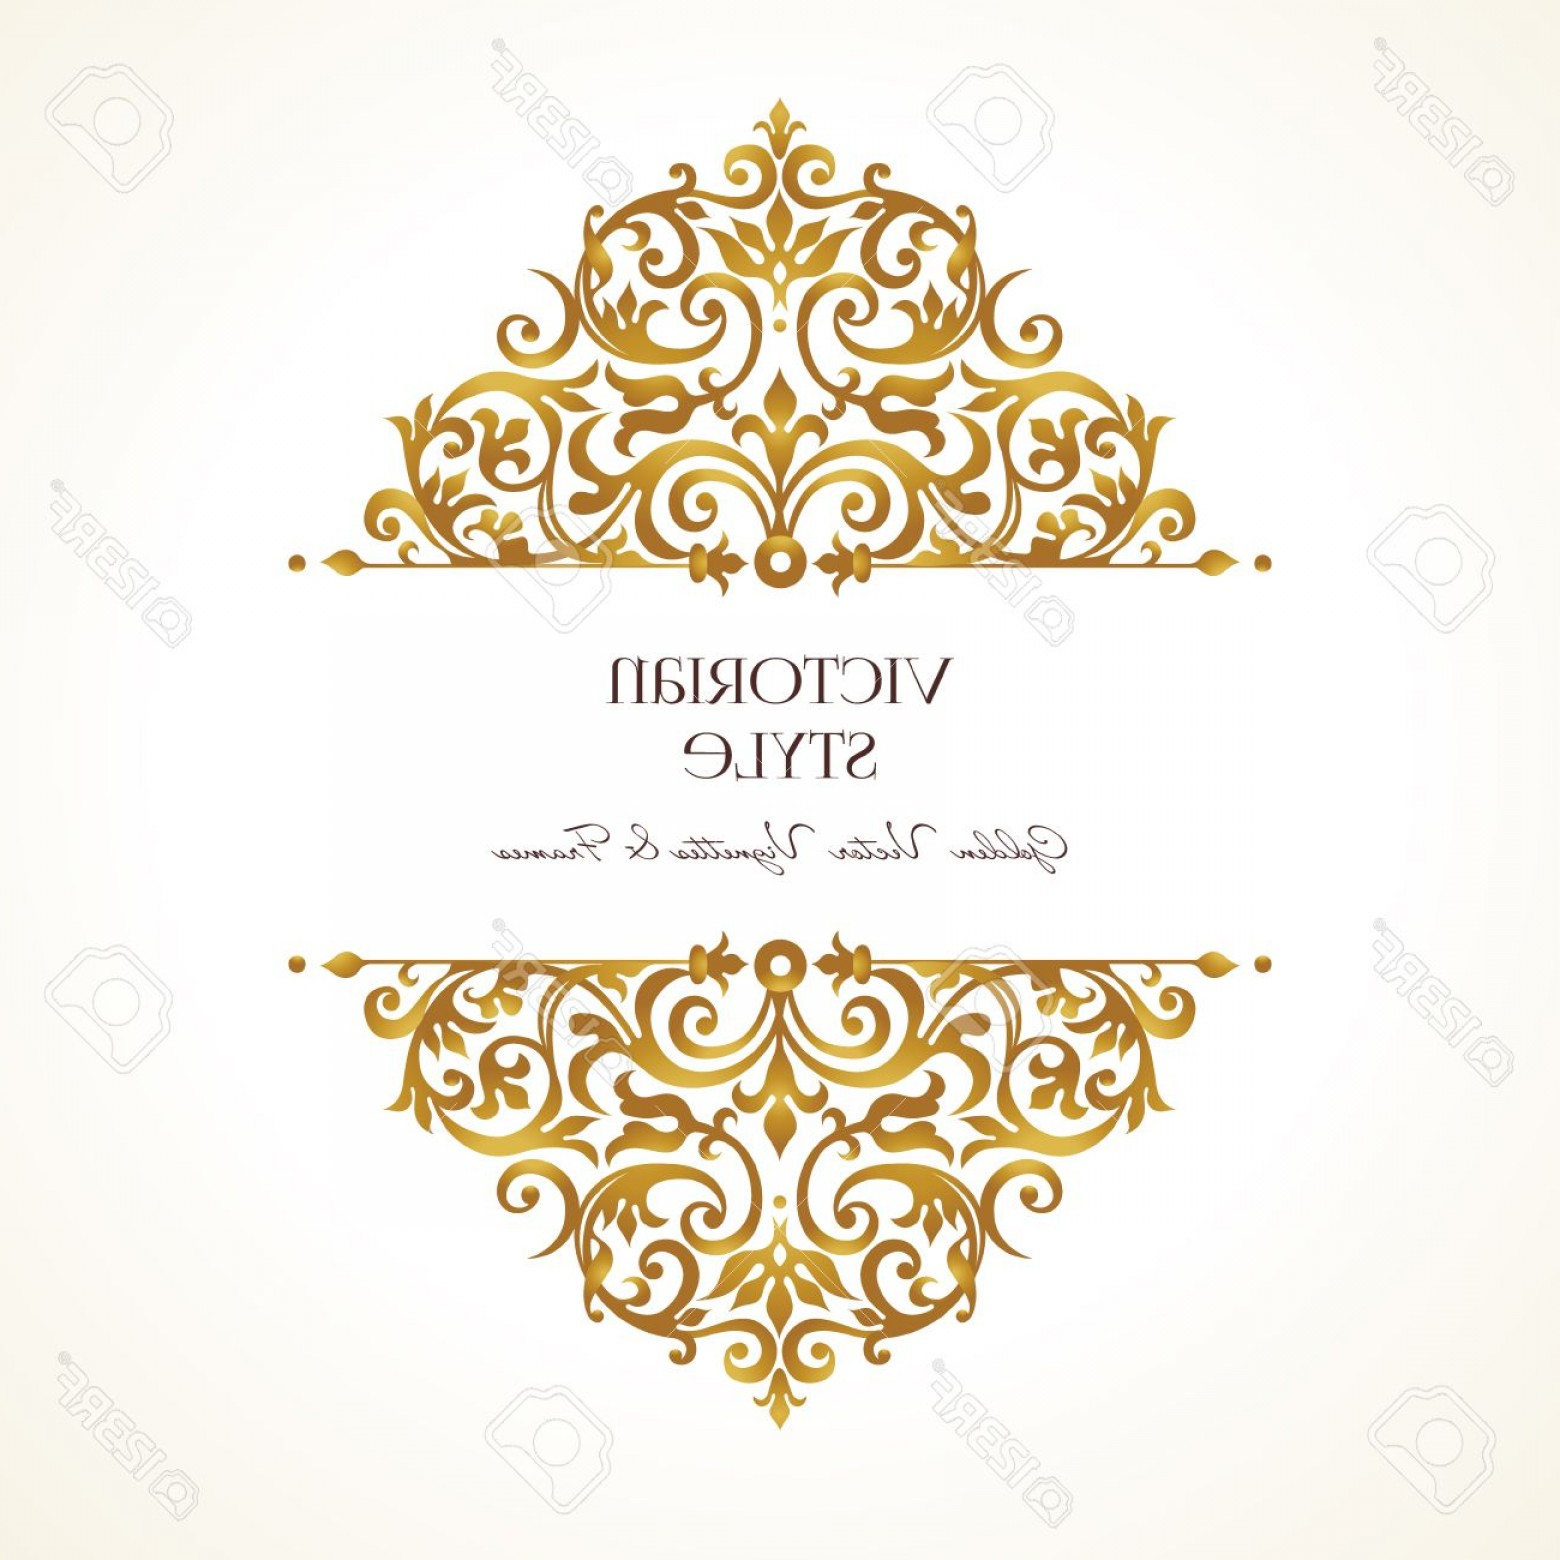 Victorian Style Frame Vector: Photostock Vector Ornate Vintage Vignettes Luxury Floral Golden Decor In Victorian Style Template Frame For Greeting C